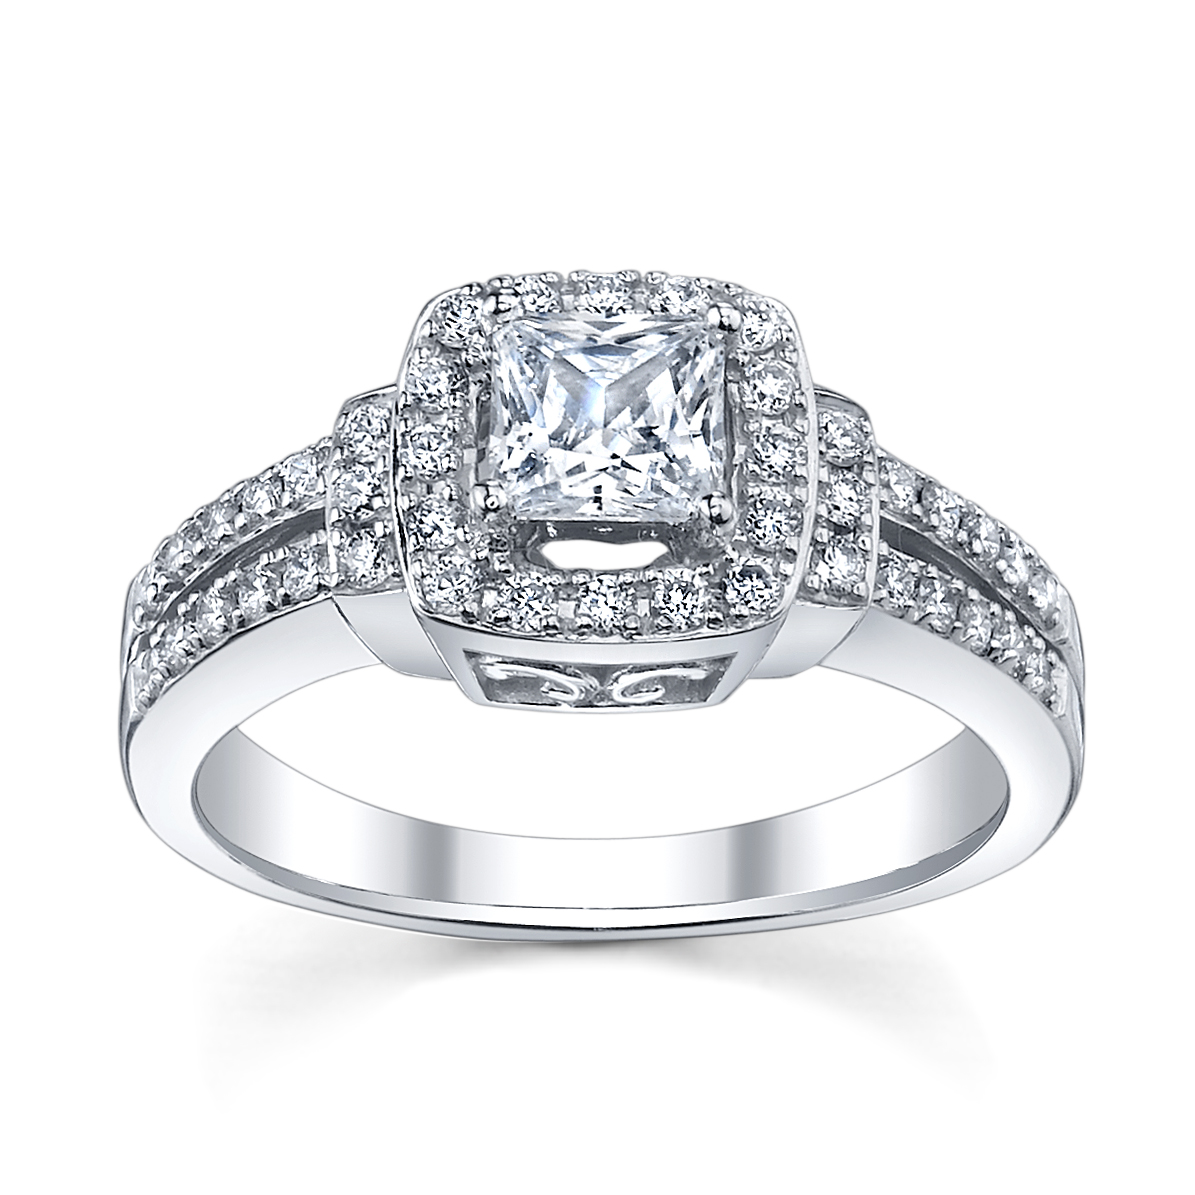 princess cut engagement ring with split shank from wwwrobbinsbrotherscom sku0377934 - Wedding Ring Princess Cut